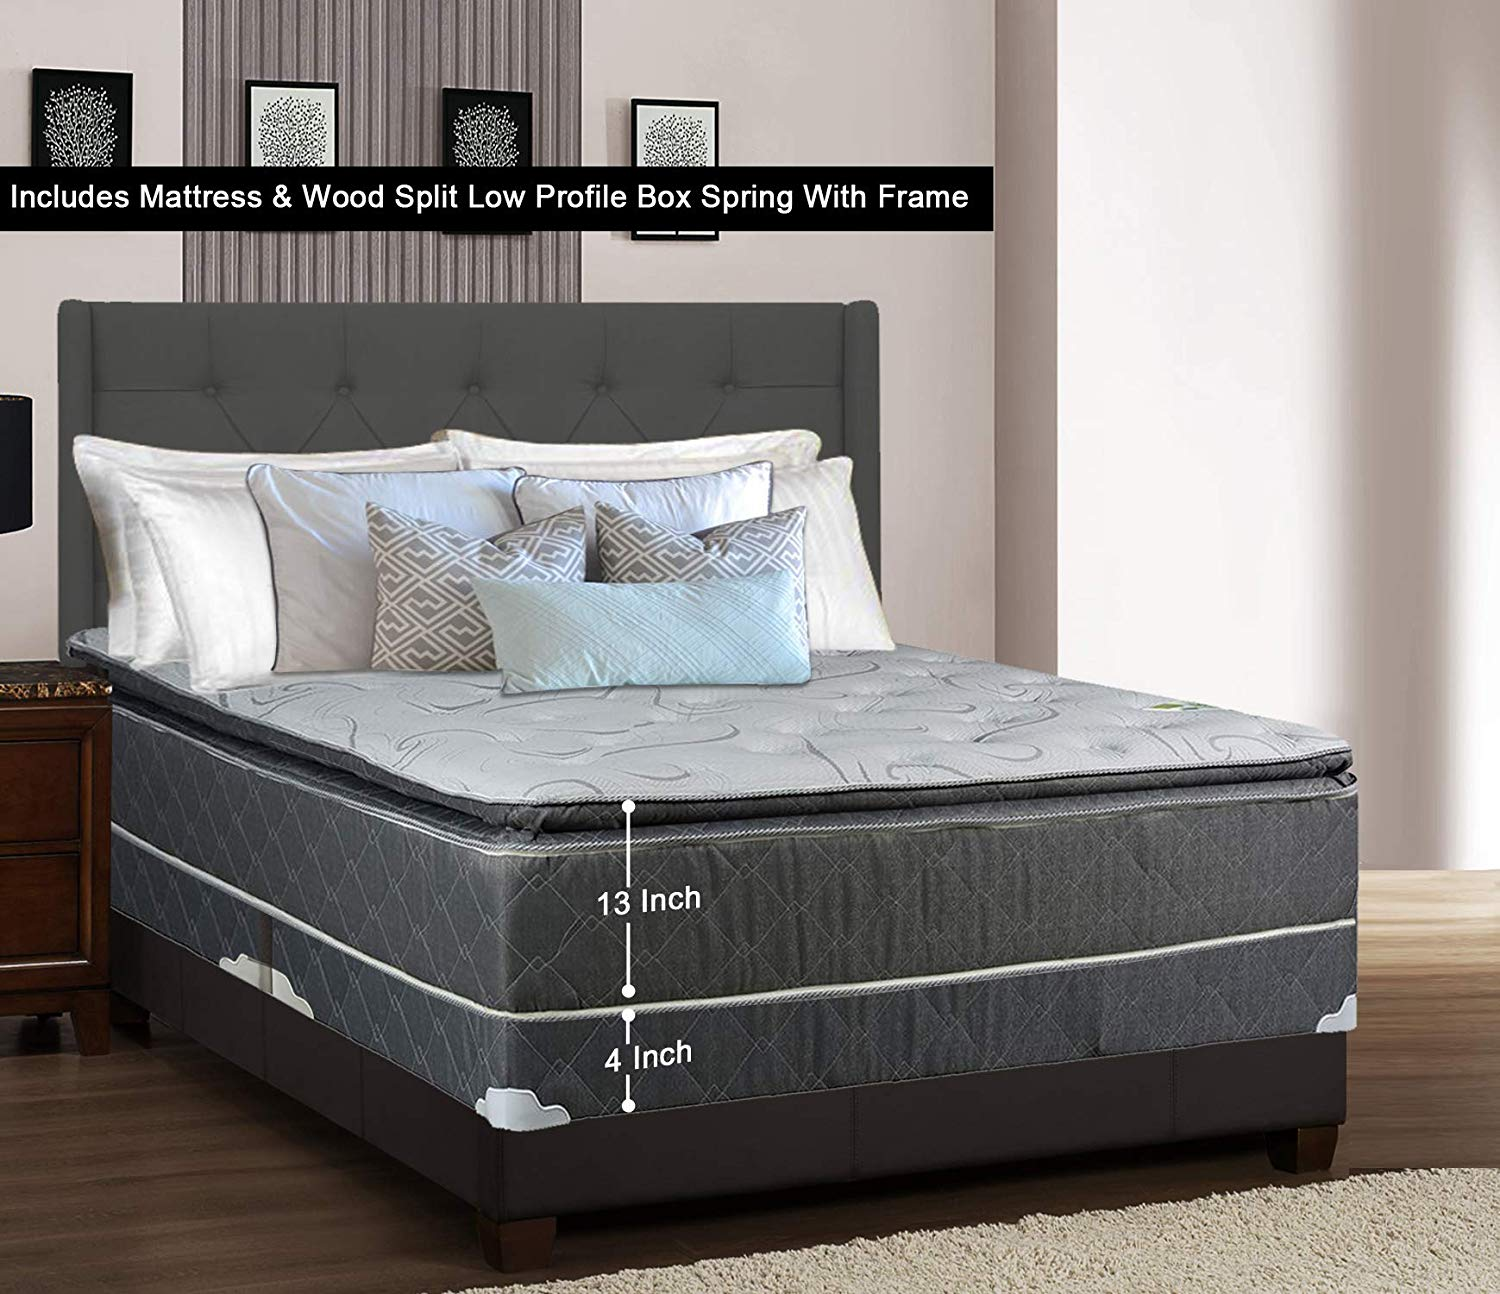 Greaton 9030vF-3/3-2LPS Fully Assembled Medium Plush Pillow Top Innerspring Mattress and 4-inch Split Wood Box Spring/Foundation Set with Frame |Twin Size| Grey, Color